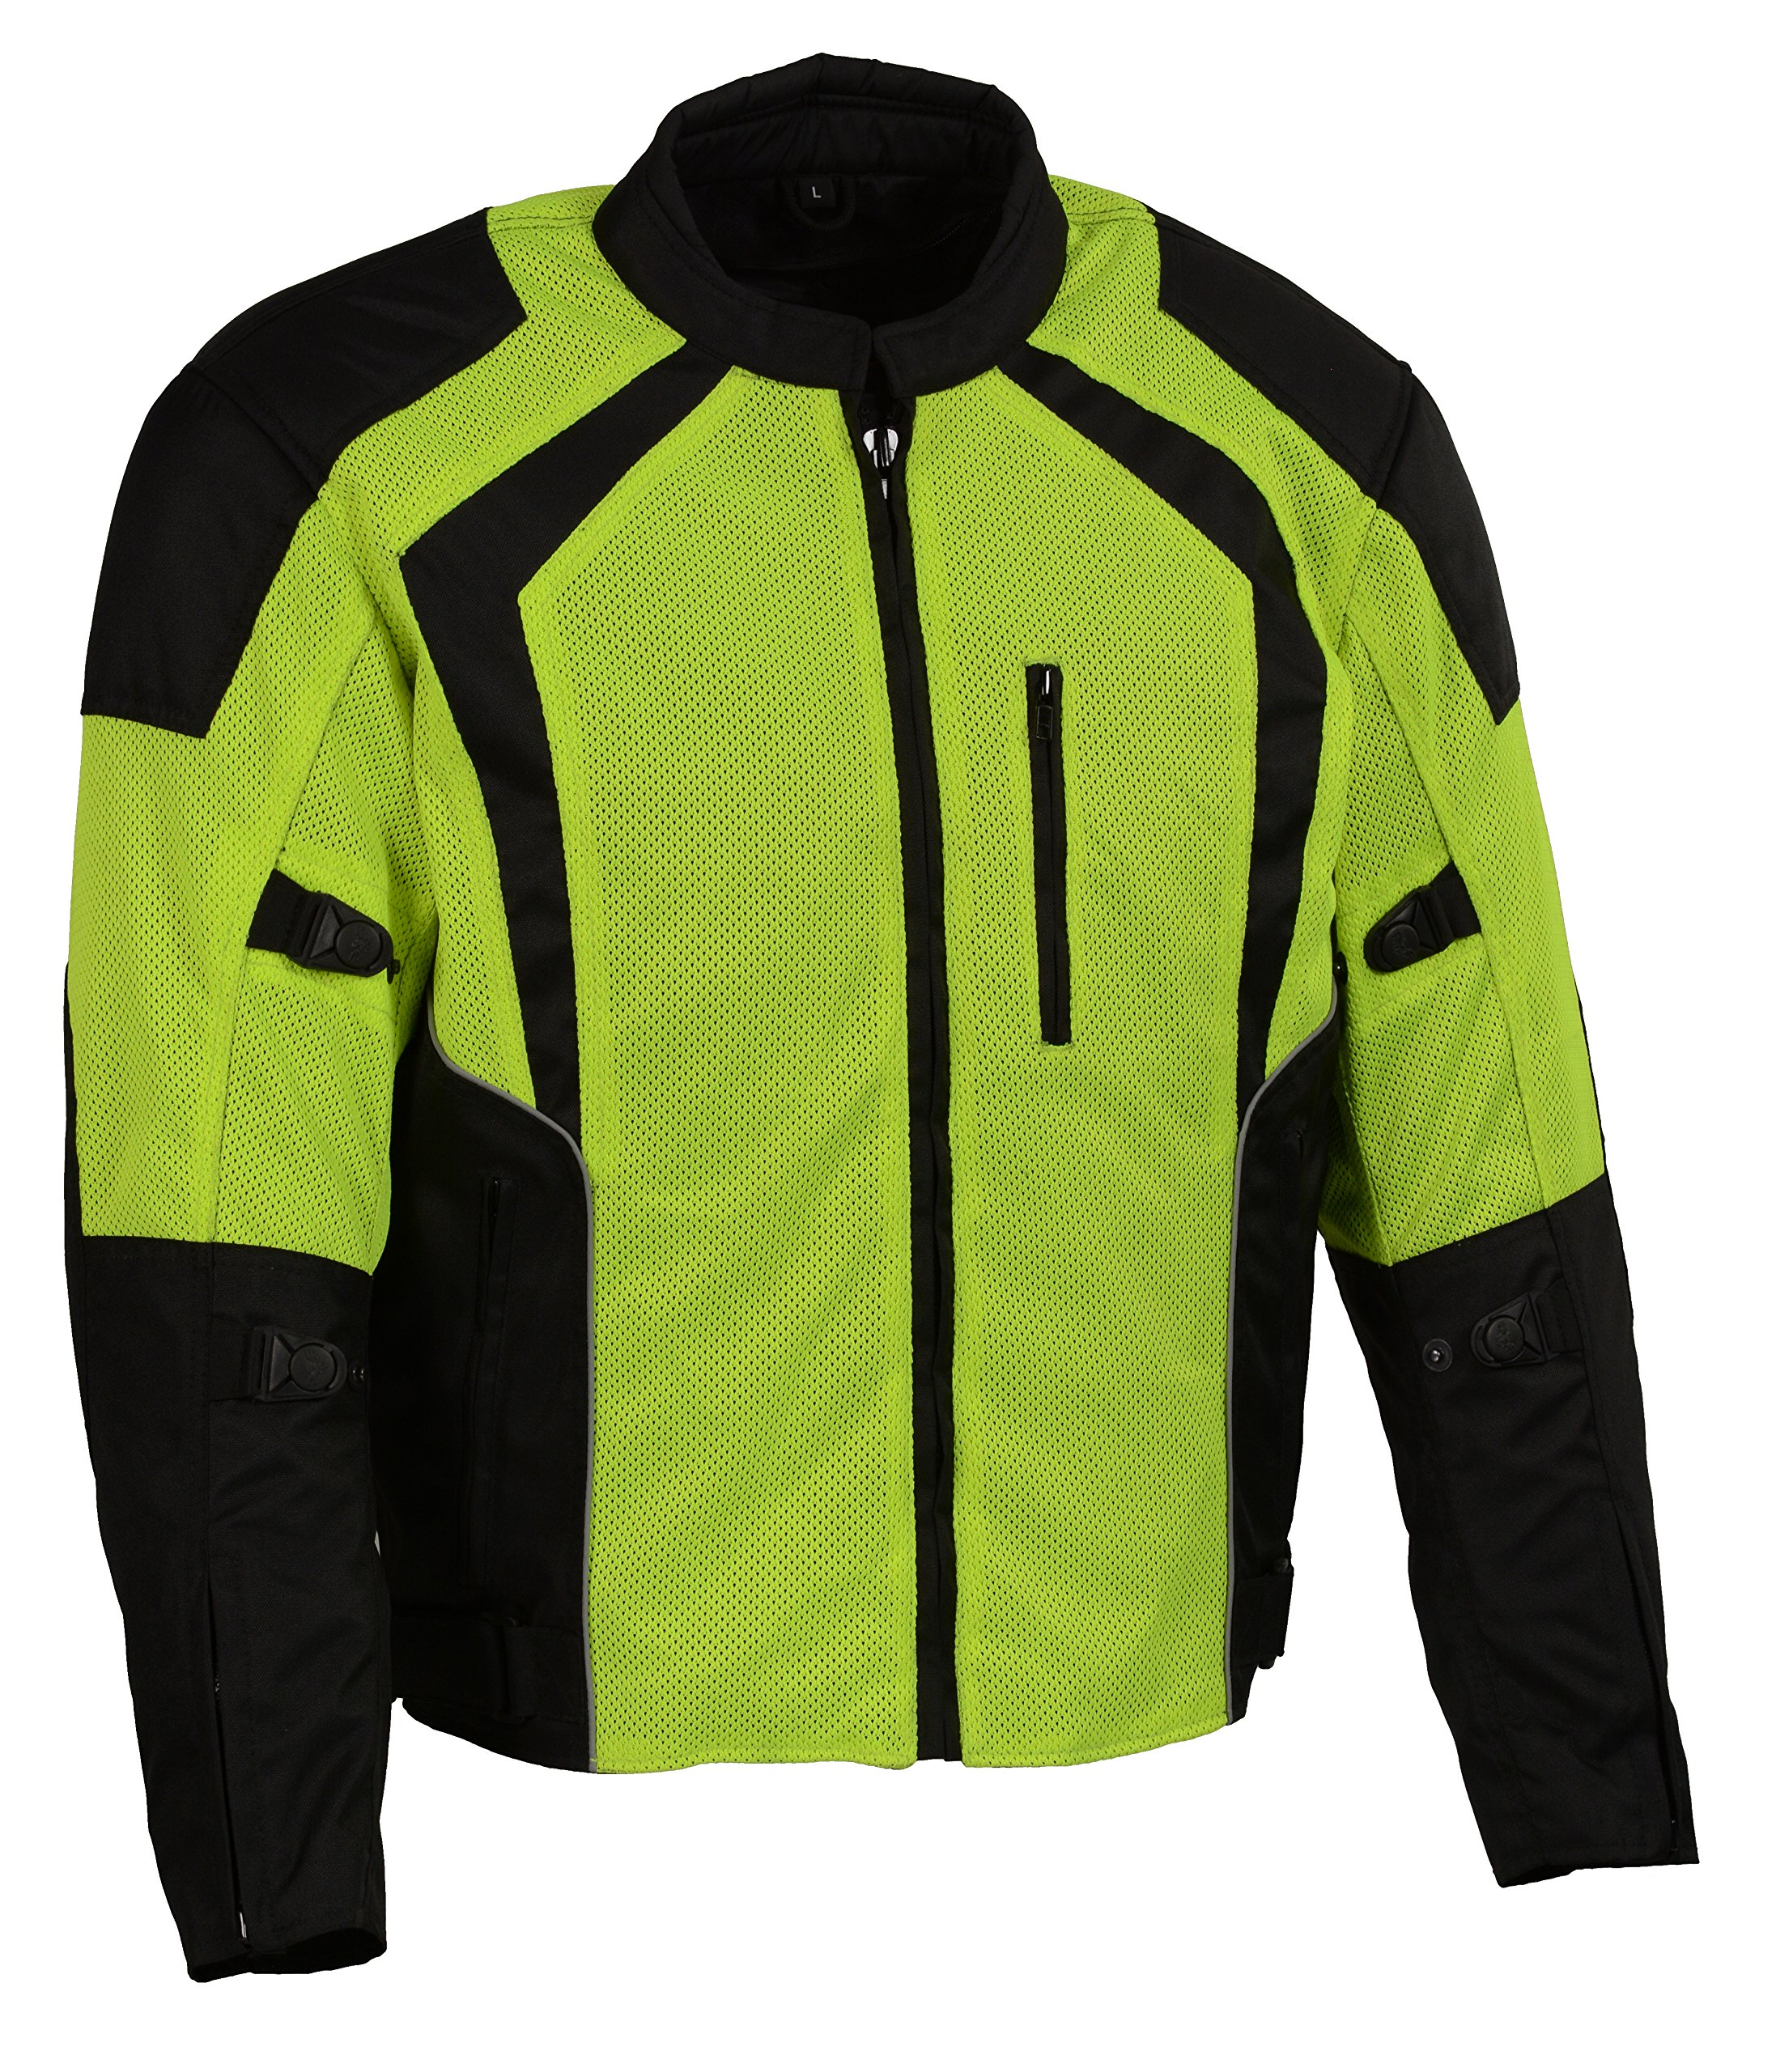 Milaukee Performance-Men's Nylon/Mesh Combo Racing Jacket w/Armor-BLK/NEON GREEN-MD